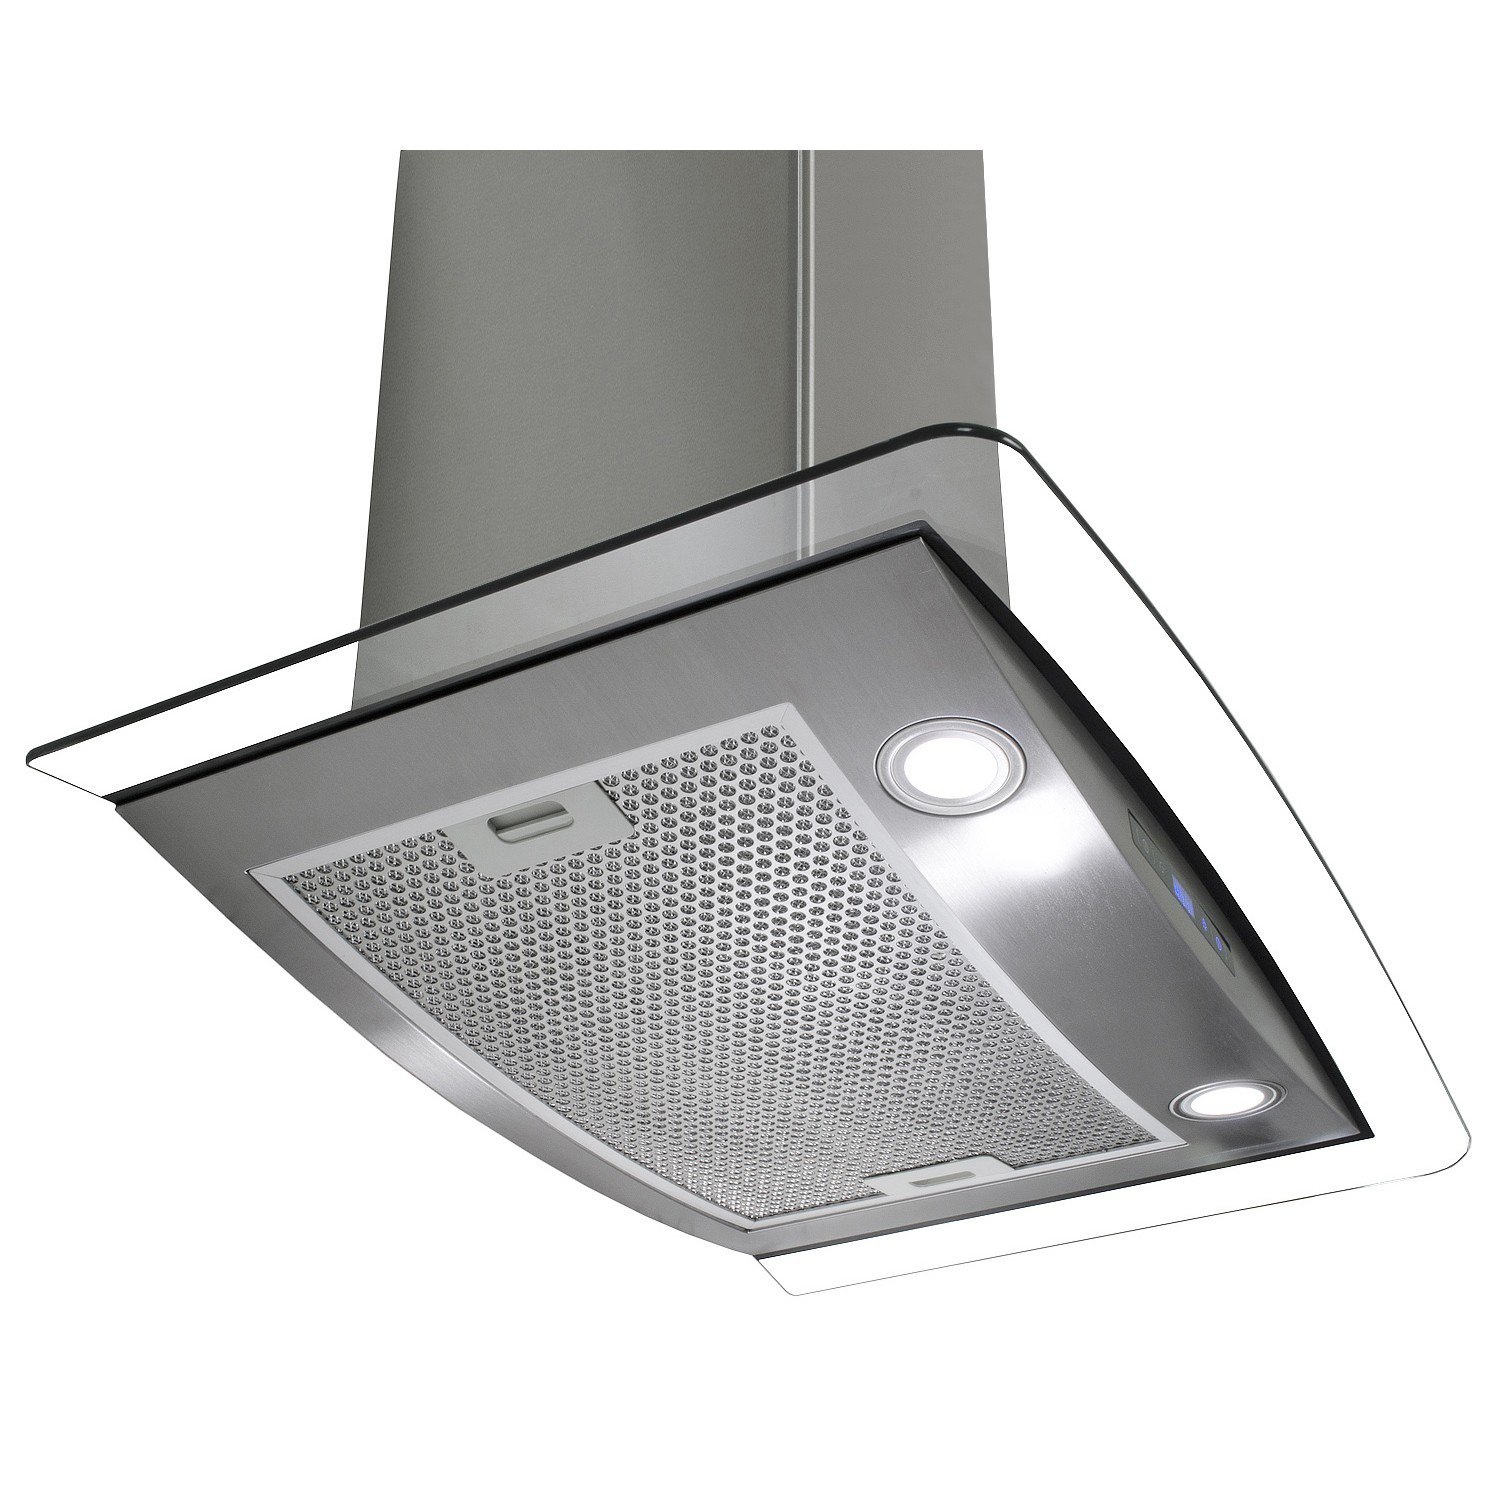 AKDY AWR88CS1430 30' Wall Mount Ducted Range Hood with 760 CFM Motor 3 Speed Fan Levels Touch Control Panel LED Lighting Dishwasher Safe Filter Curved Tempered Glass and Stainless Steel